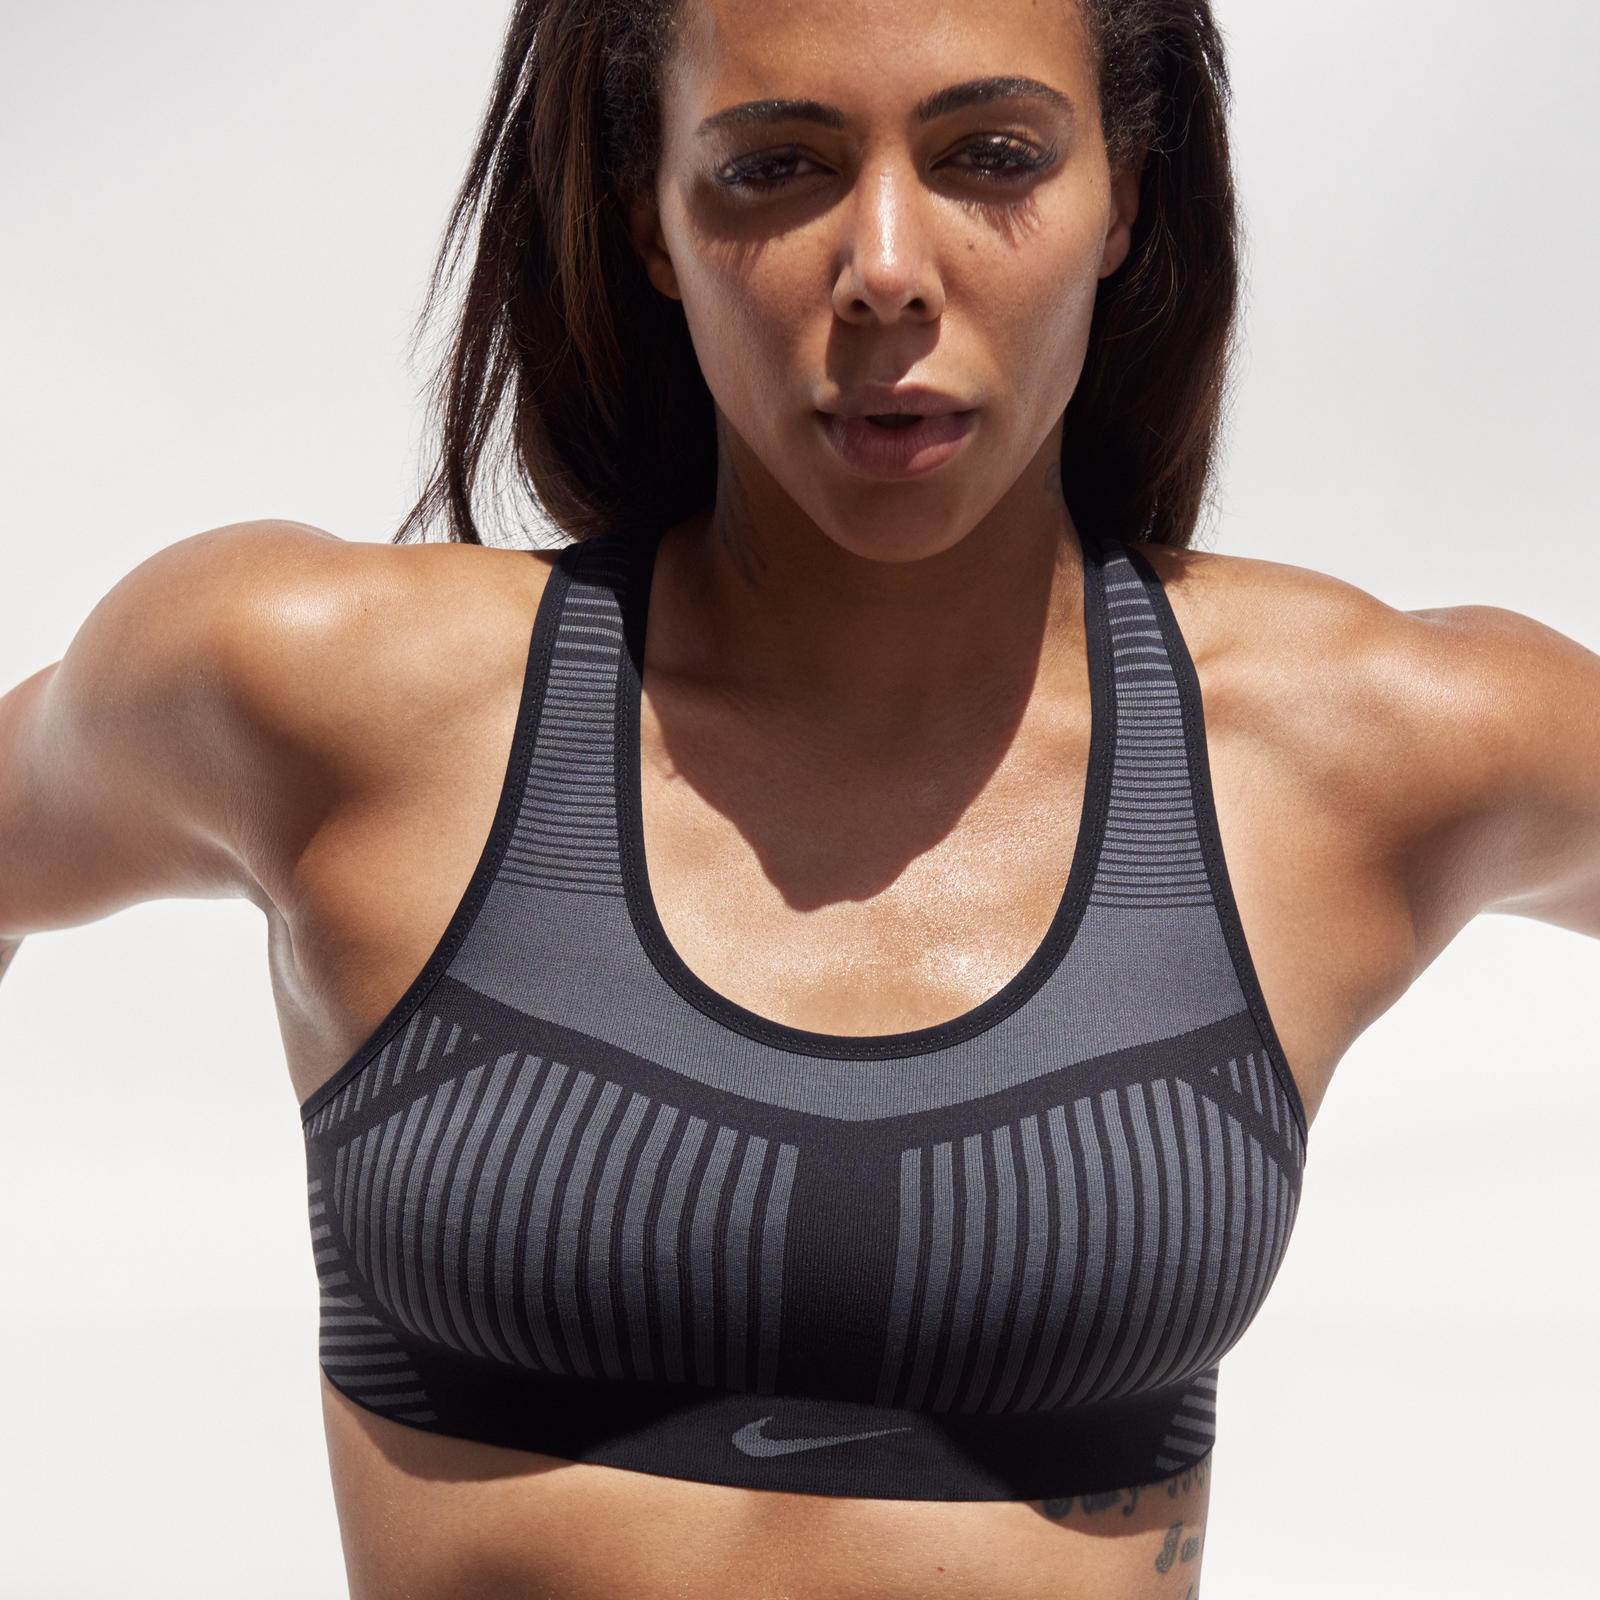 """Some sports bras keep me so locked in that it's almost hard to breathe. But when I wear the Nike FE/NOM Flyknit Bra I feel free, like I can move around but still be completely supported,"